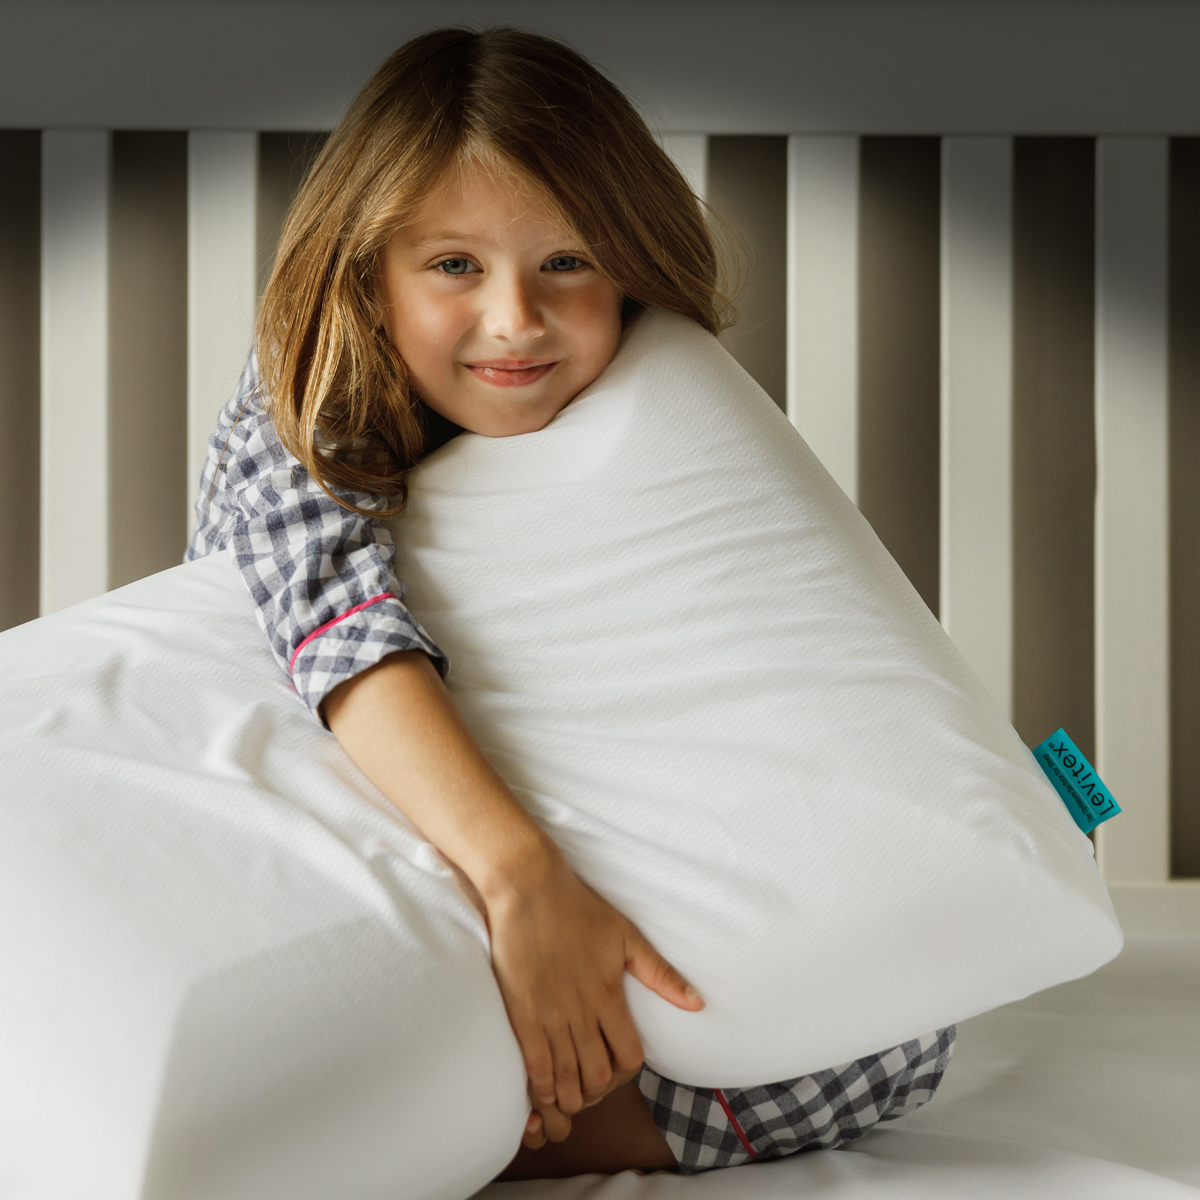 girl holding levitex pillow for neck pain